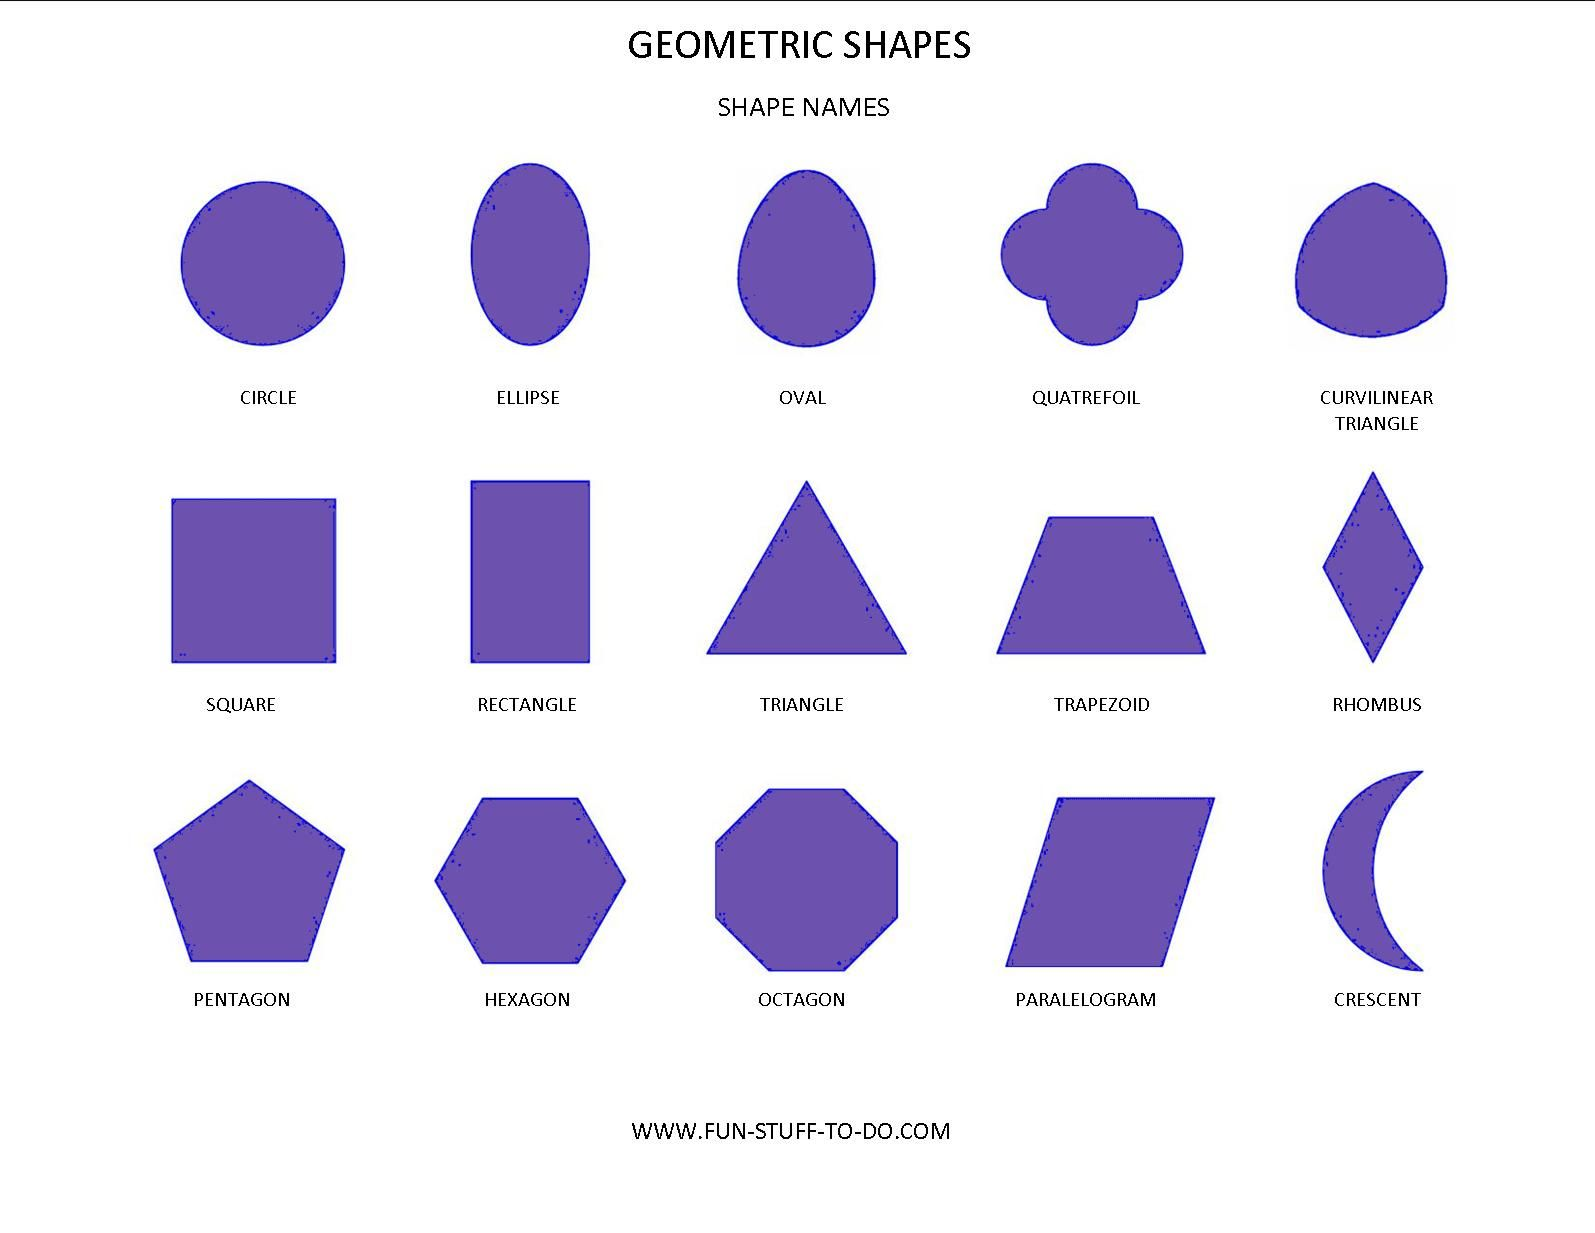 Geometric Shapes And Names What Is Most Interesting To Me